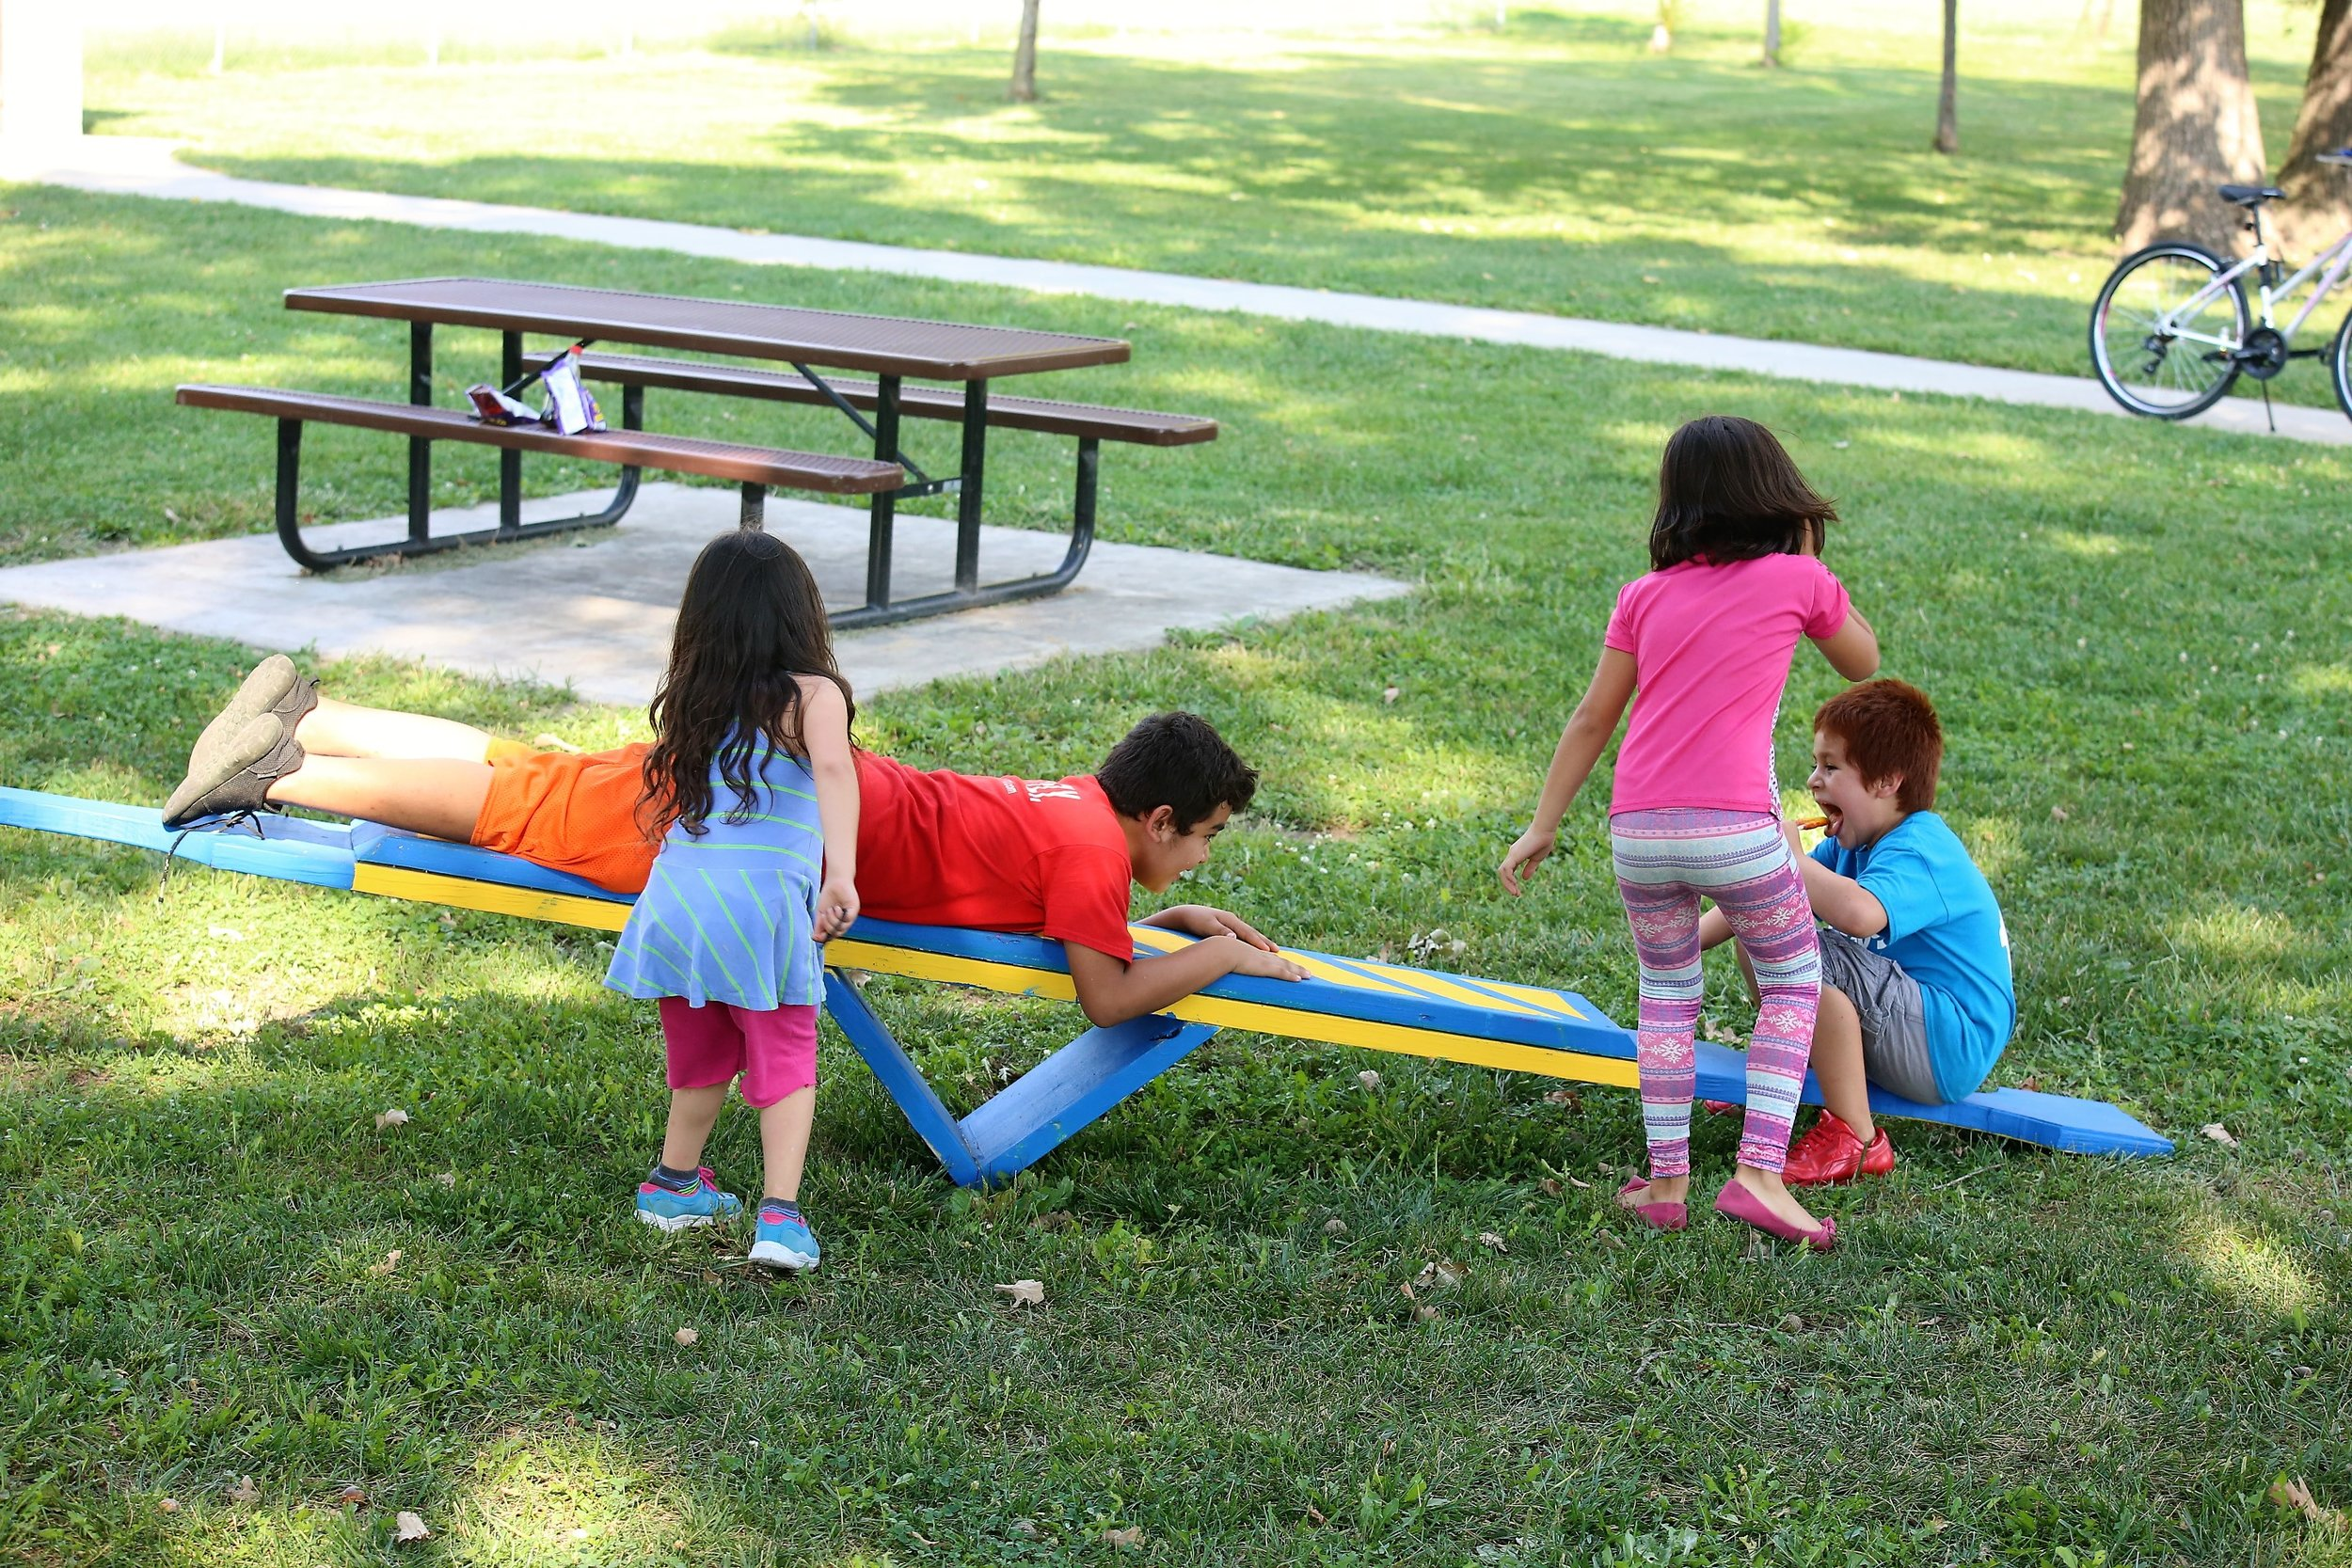 Kids found creative ways to use the active living park elements.